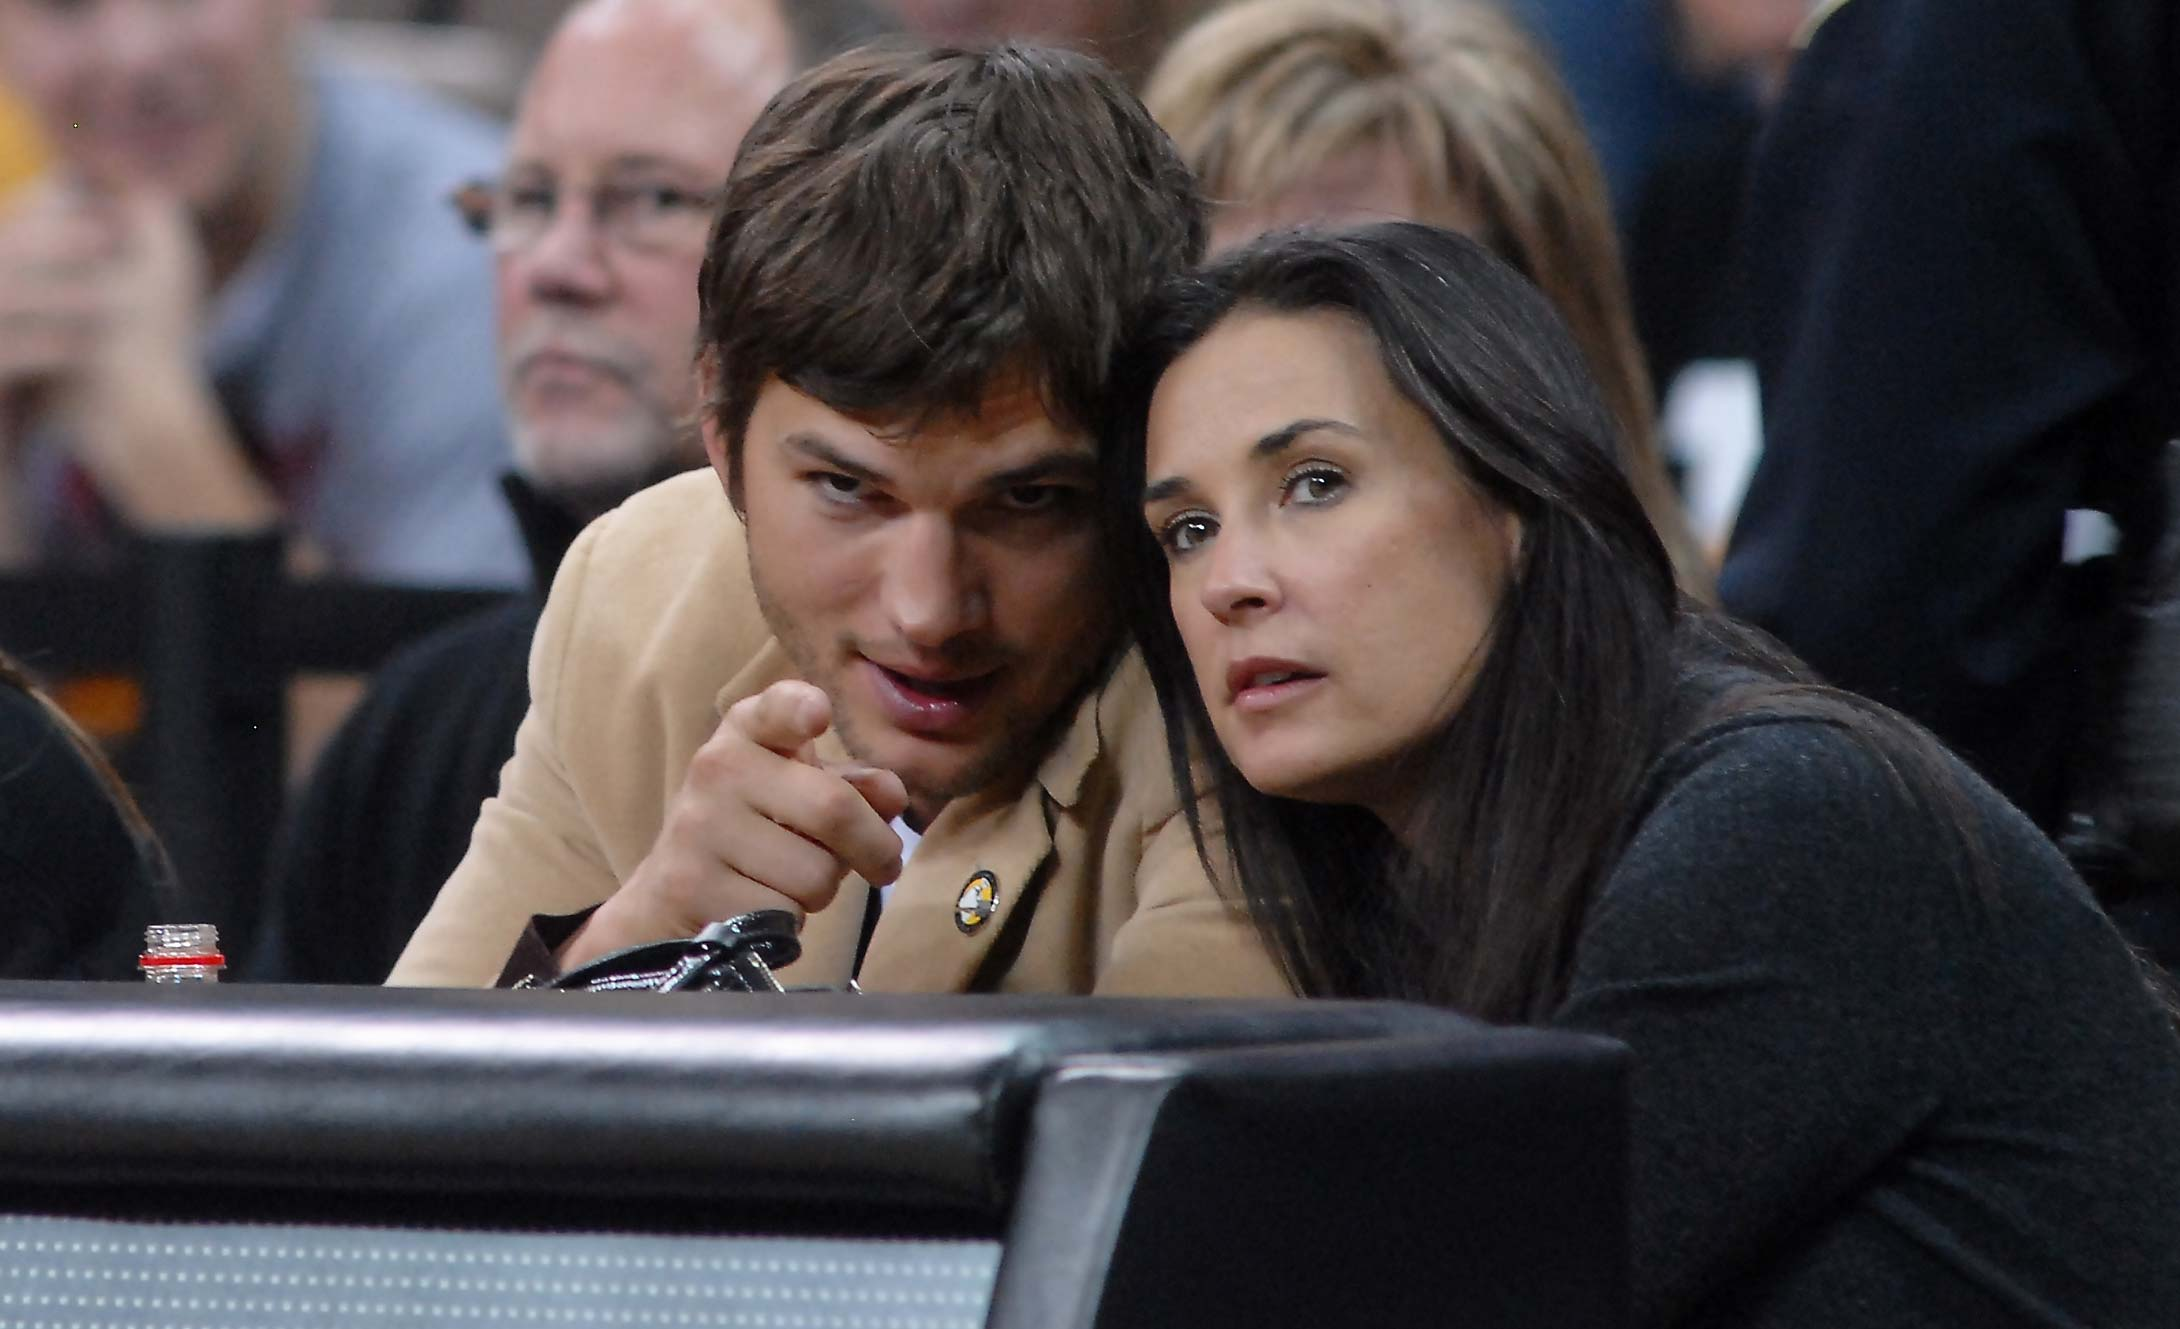 Ashton Kutcher and Demi Moore at a 2008 game between Iowa-Iowa State in Iowa City.